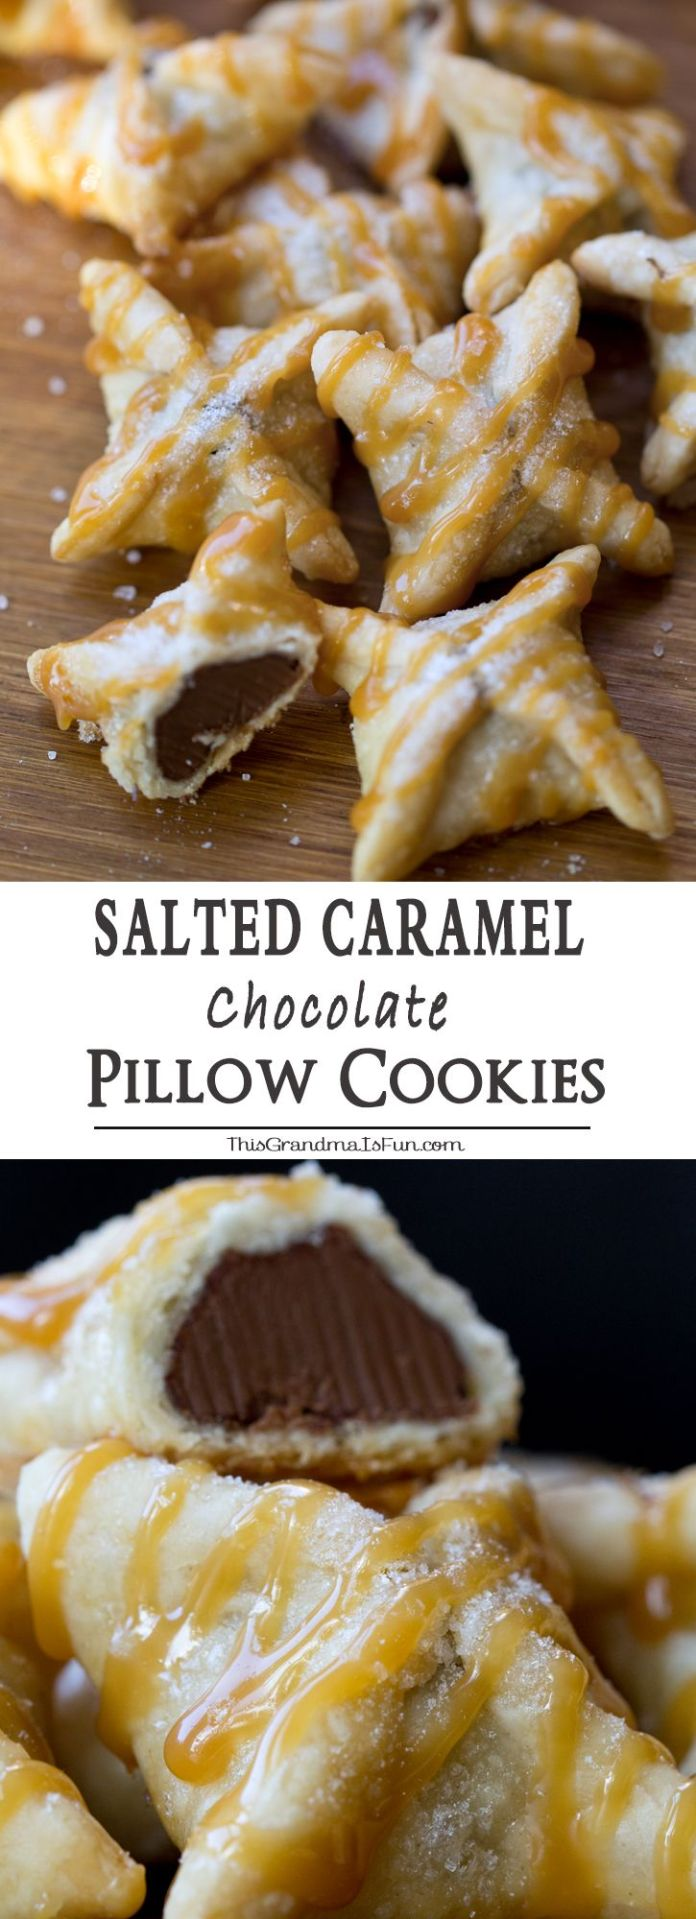 Salted Caramel Chocolate Pillow Cookies...